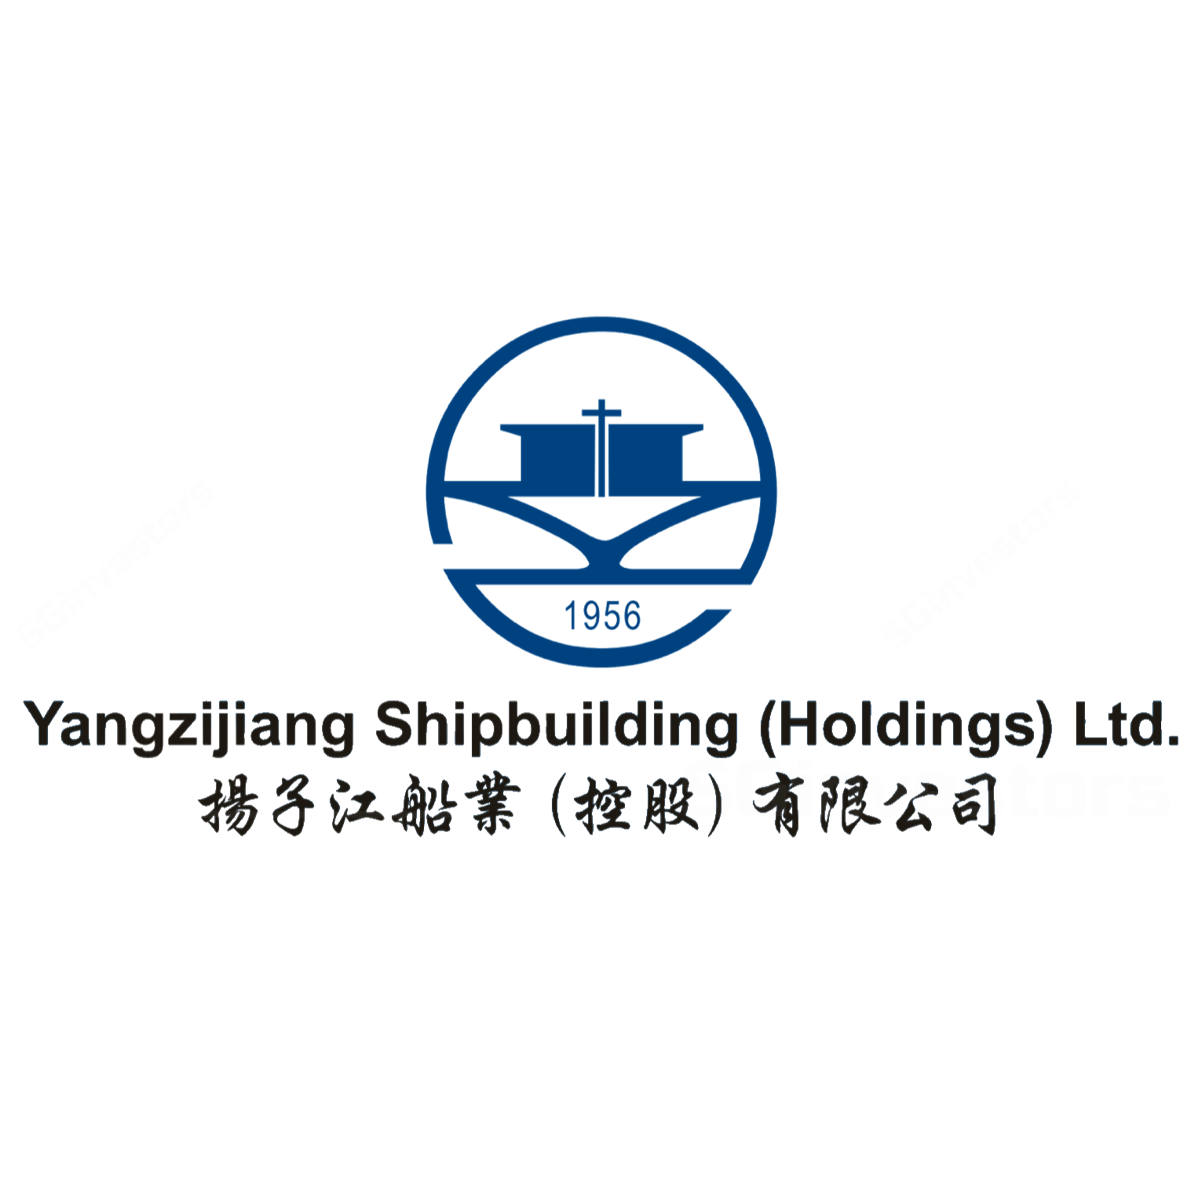 Yangzijiang Shipbuilding - CGS-CIMB Research 2018-06-05: Orders Could Surpass Expectations